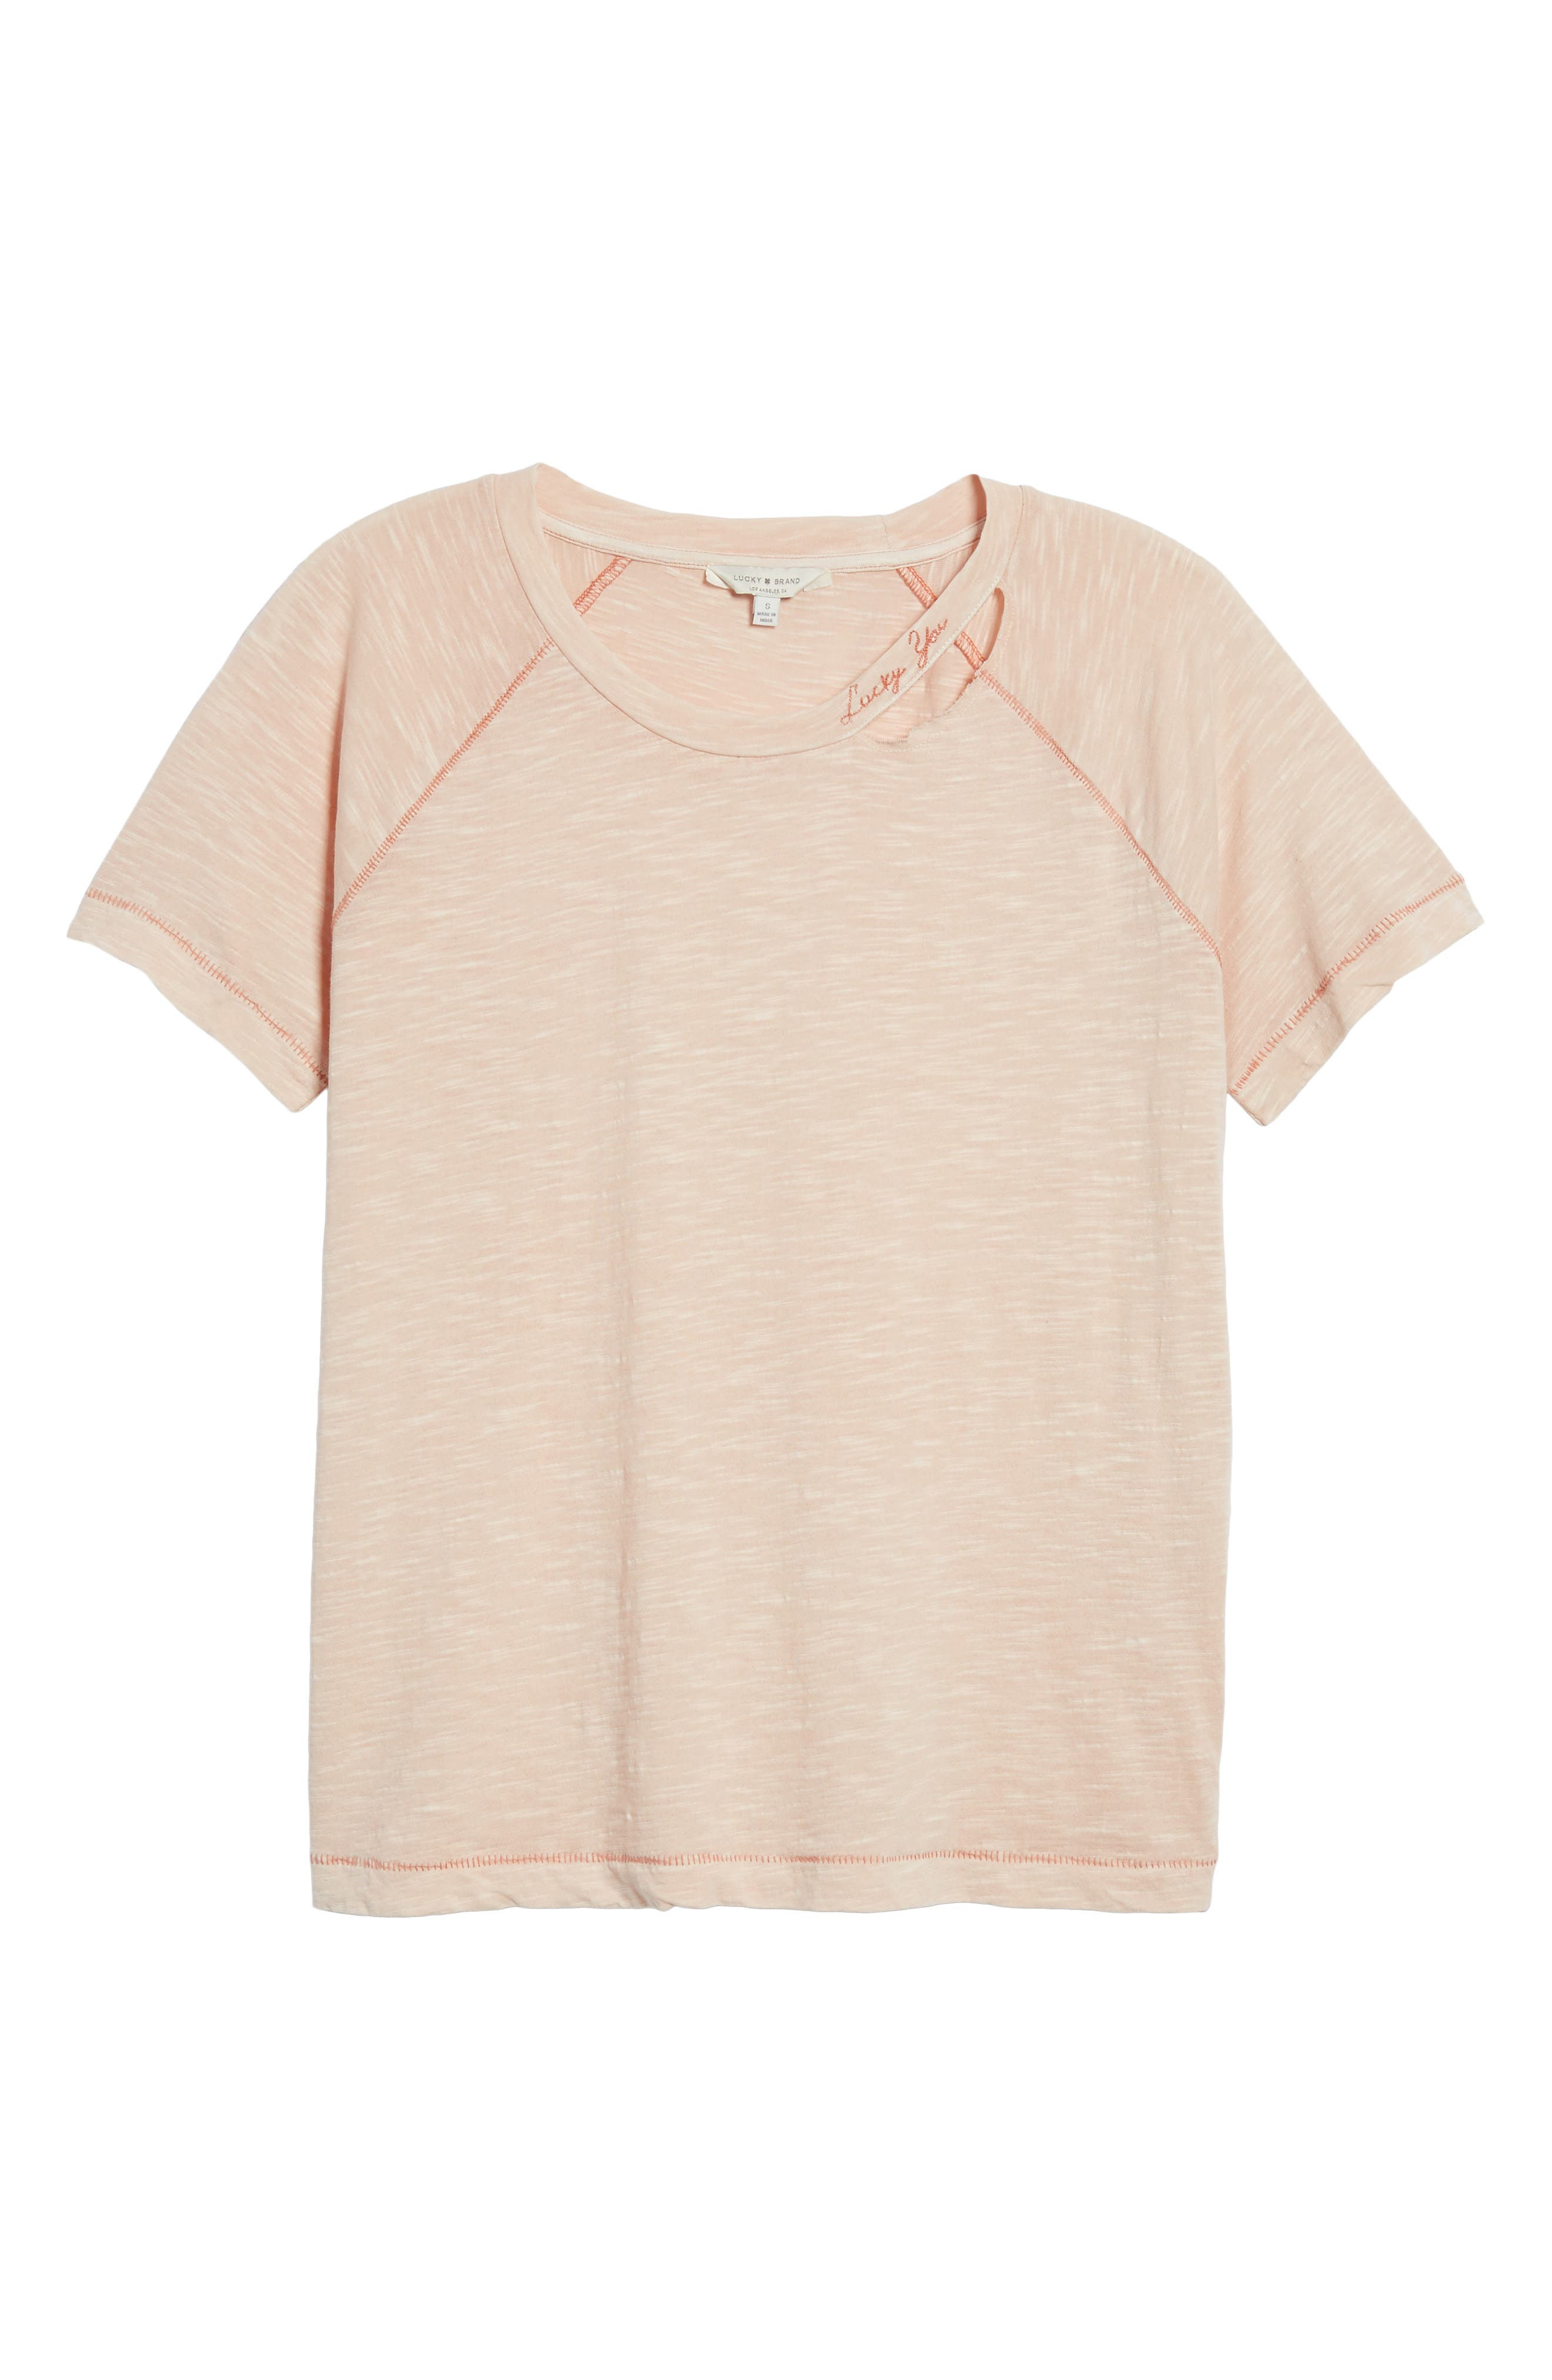 'Lucky You' Deconstructed Tee,                             Alternate thumbnail 7, color,                             Peach Whip